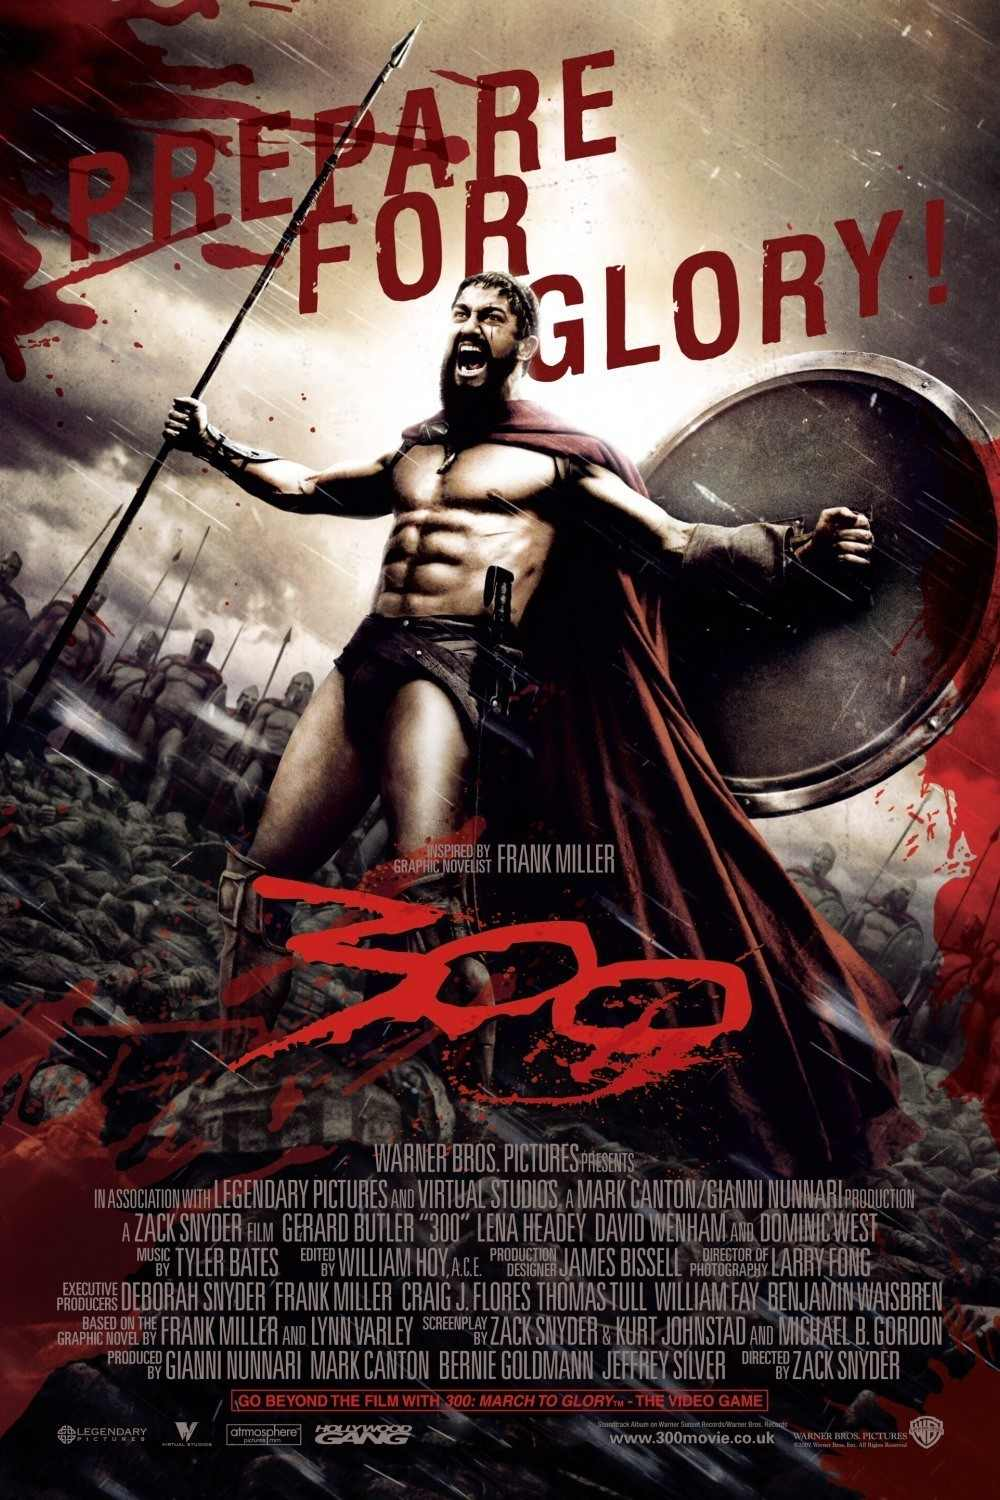 movies on demand: 300 (2006)